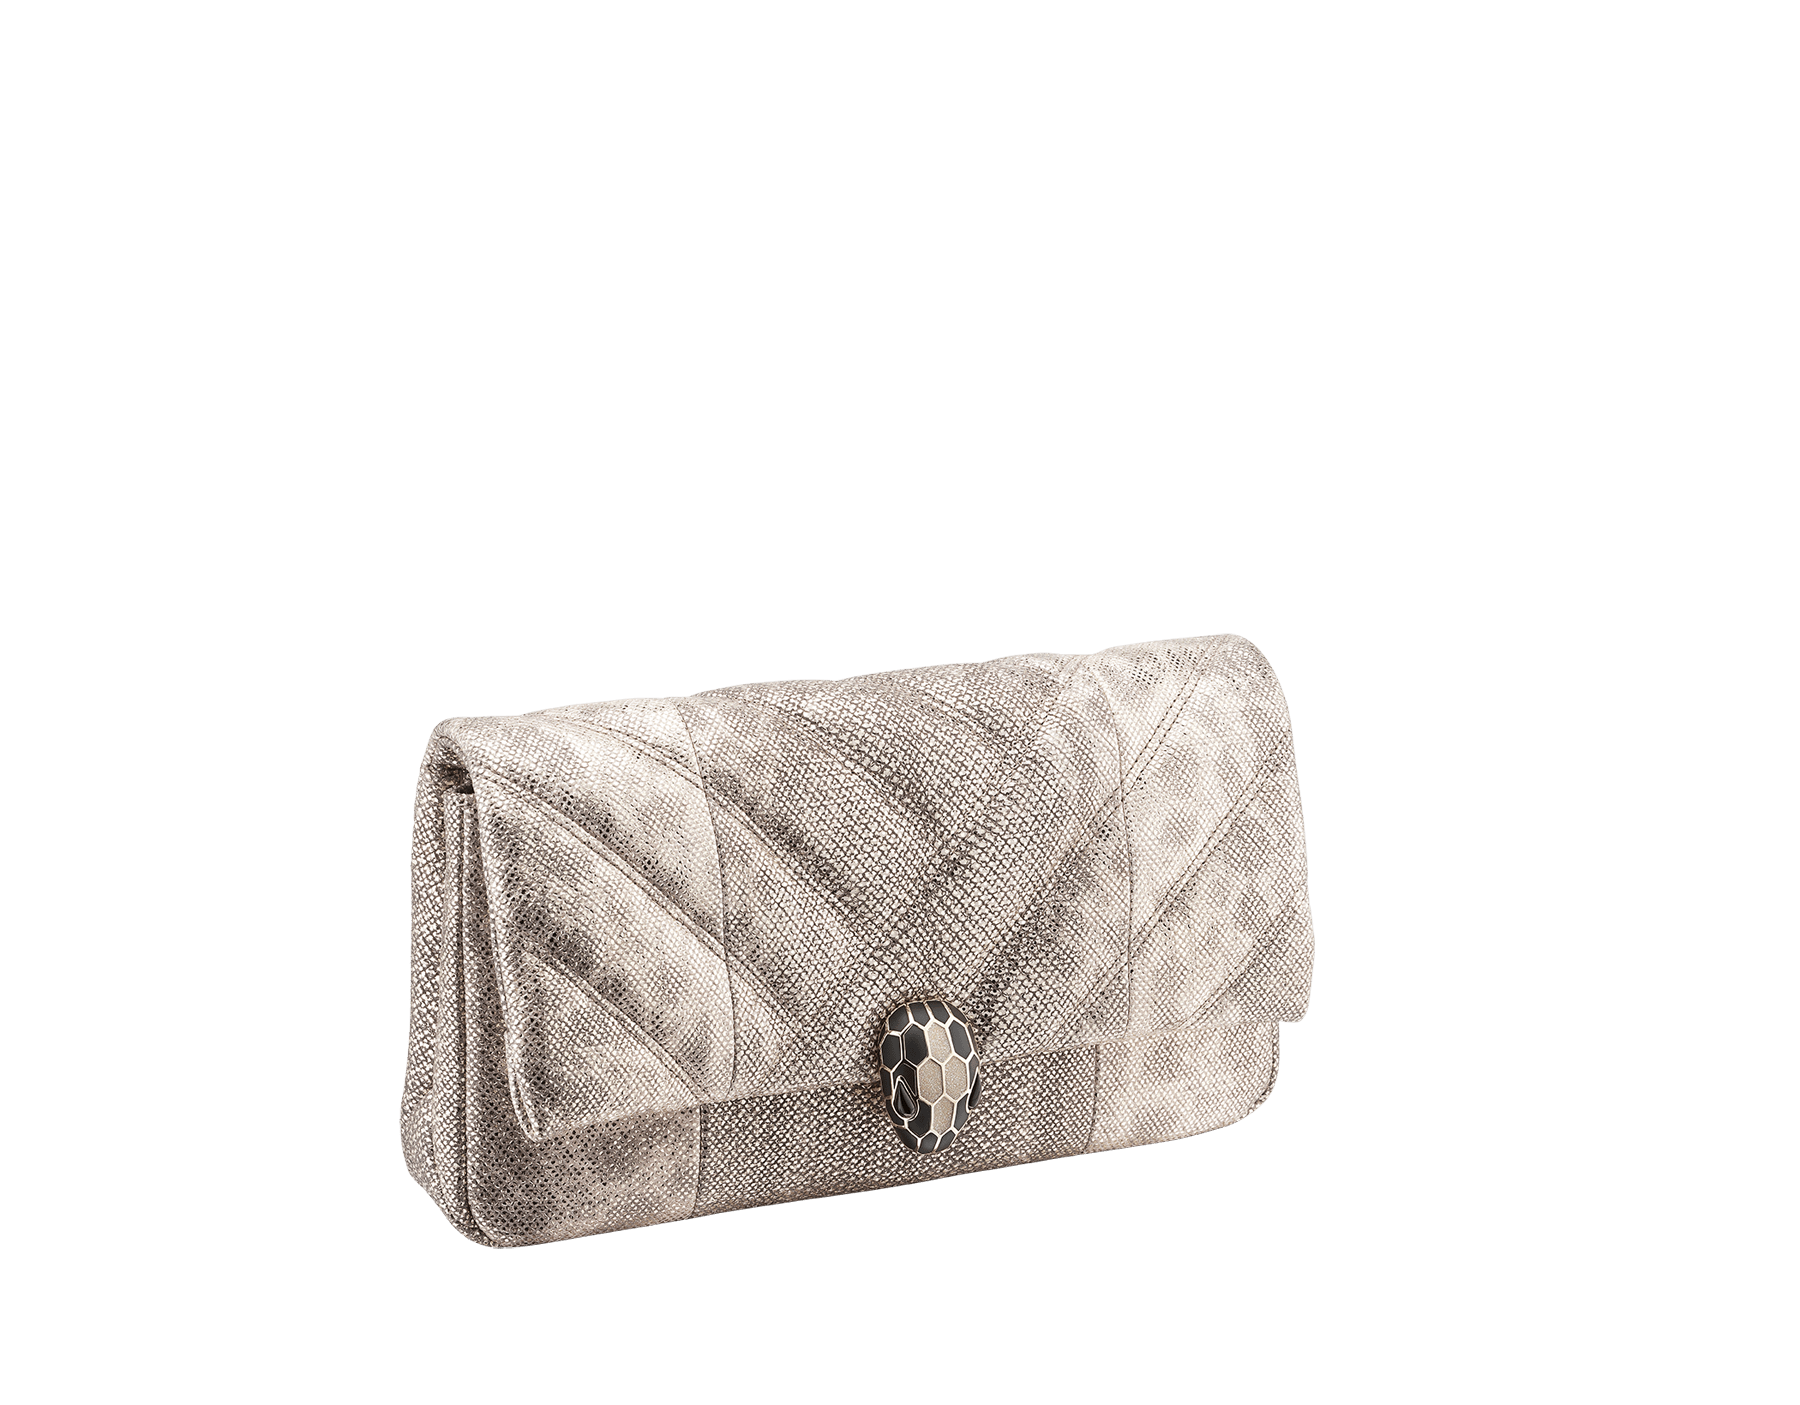 Serpenti Cabochon clutch bag in milky opal metallic karung skin, with a graphic motif. Brass light gold plated tempting snake head closure in black and glitter milky opal enamel and black onyx eyes. 1025-MK image 2